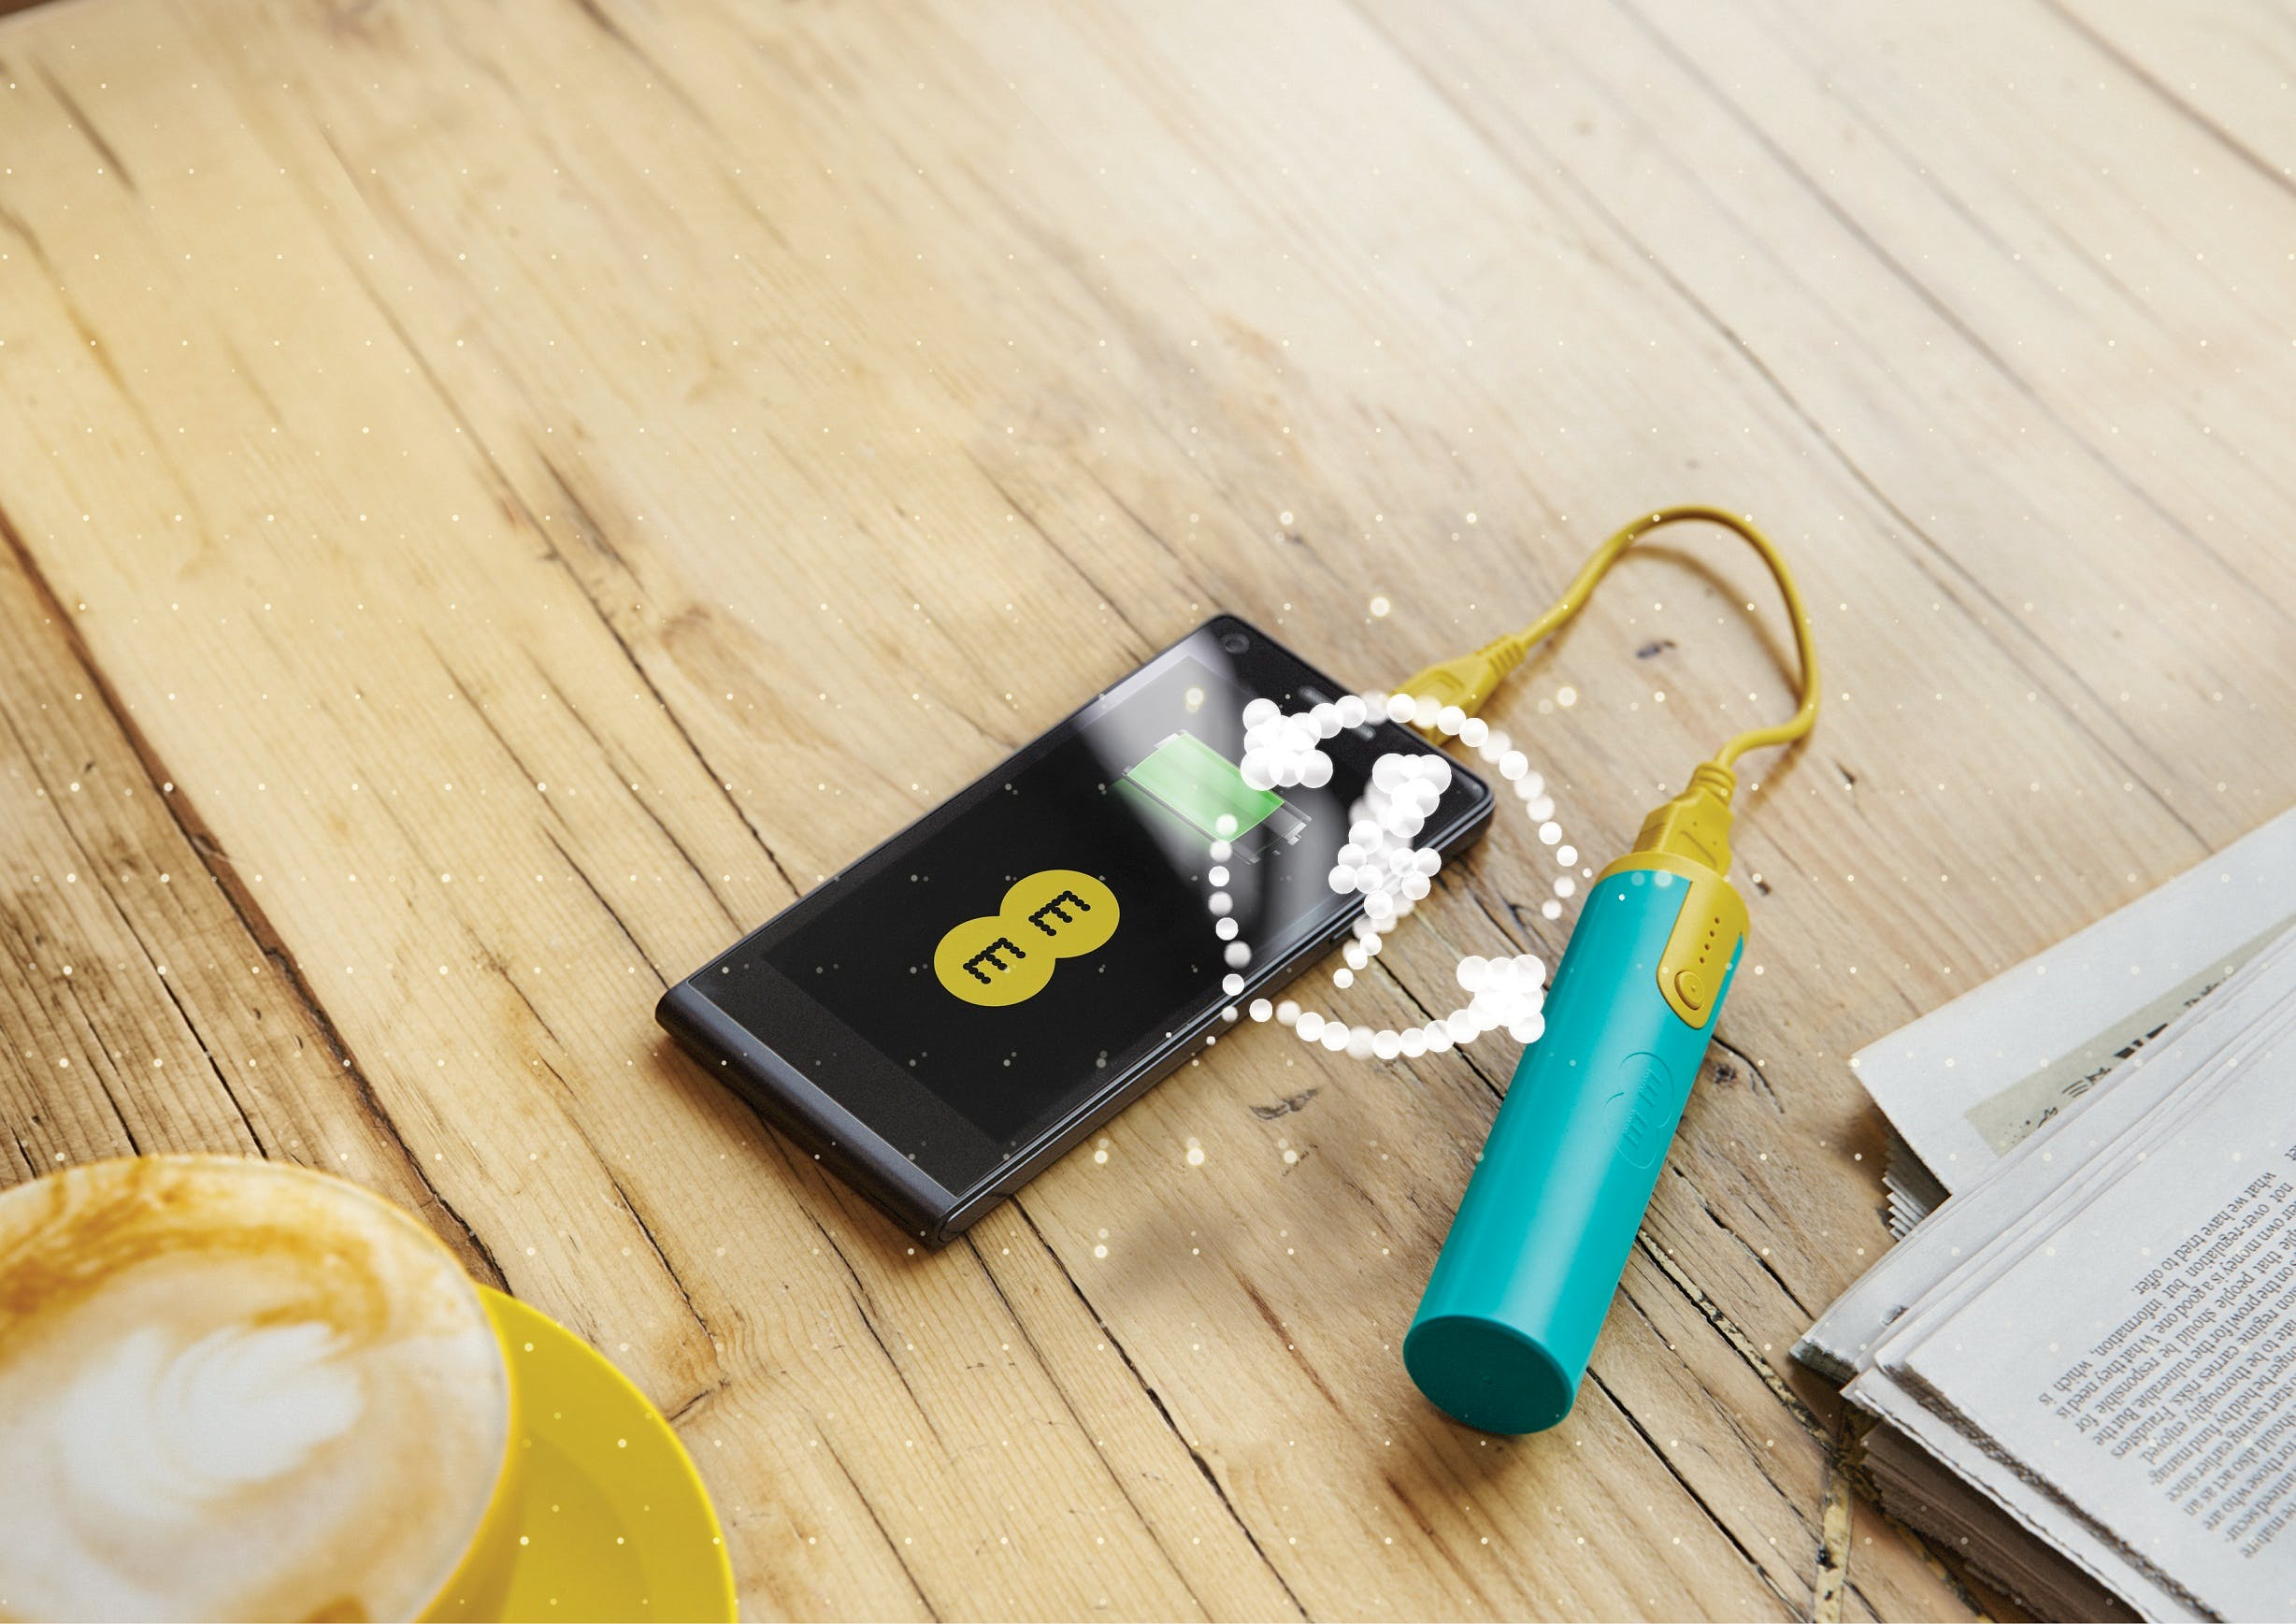 EE Power Bar launches (1)